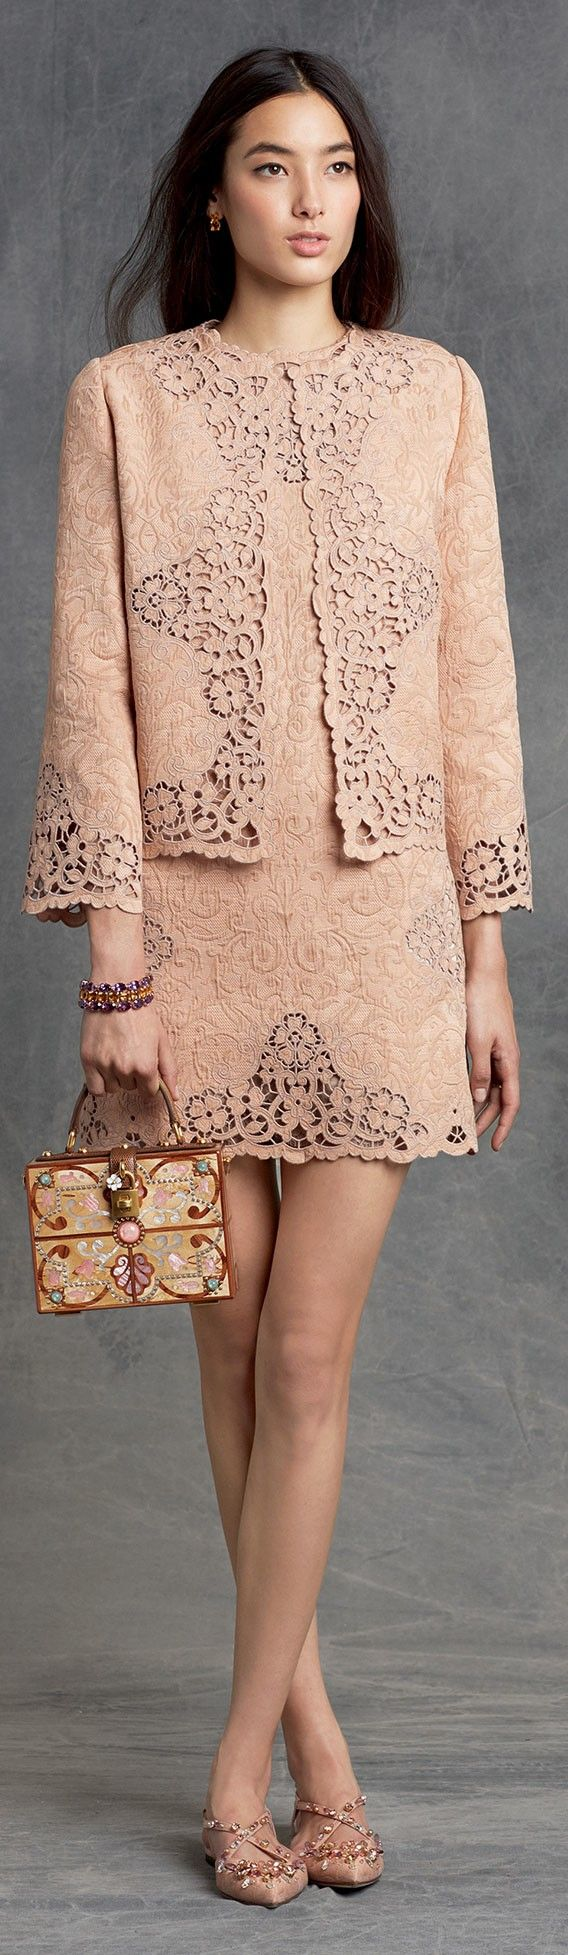 Dolce & Gabbana Winter 2016